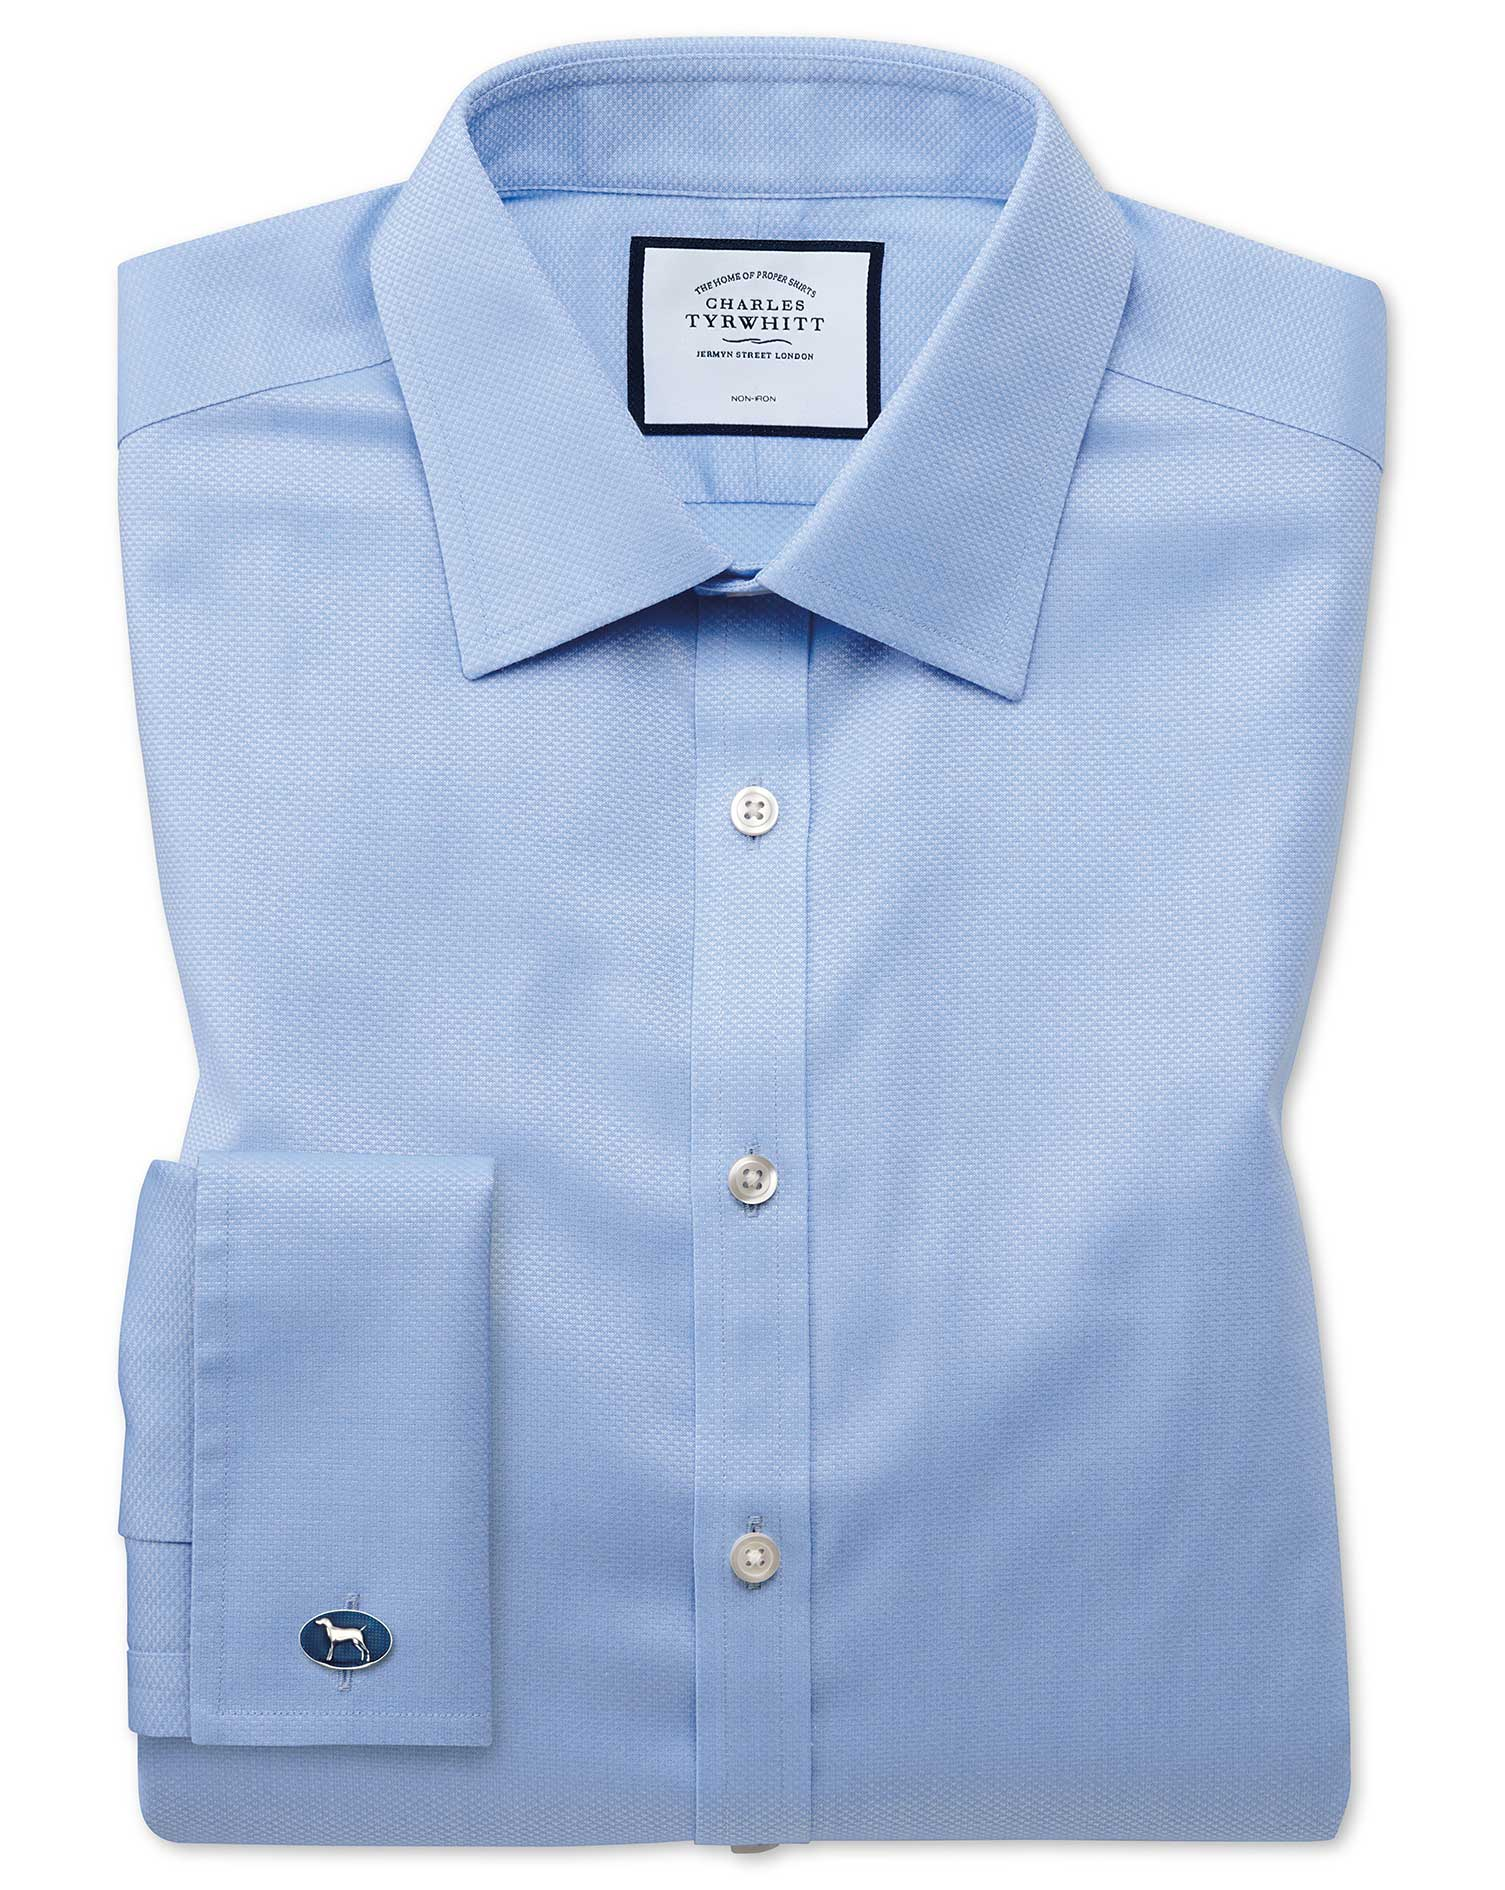 Super Slim Fit Non-Iron Sky Blue Triangle Weave Cotton Formal Shirt Double Cuff Size 16/35 by Charle